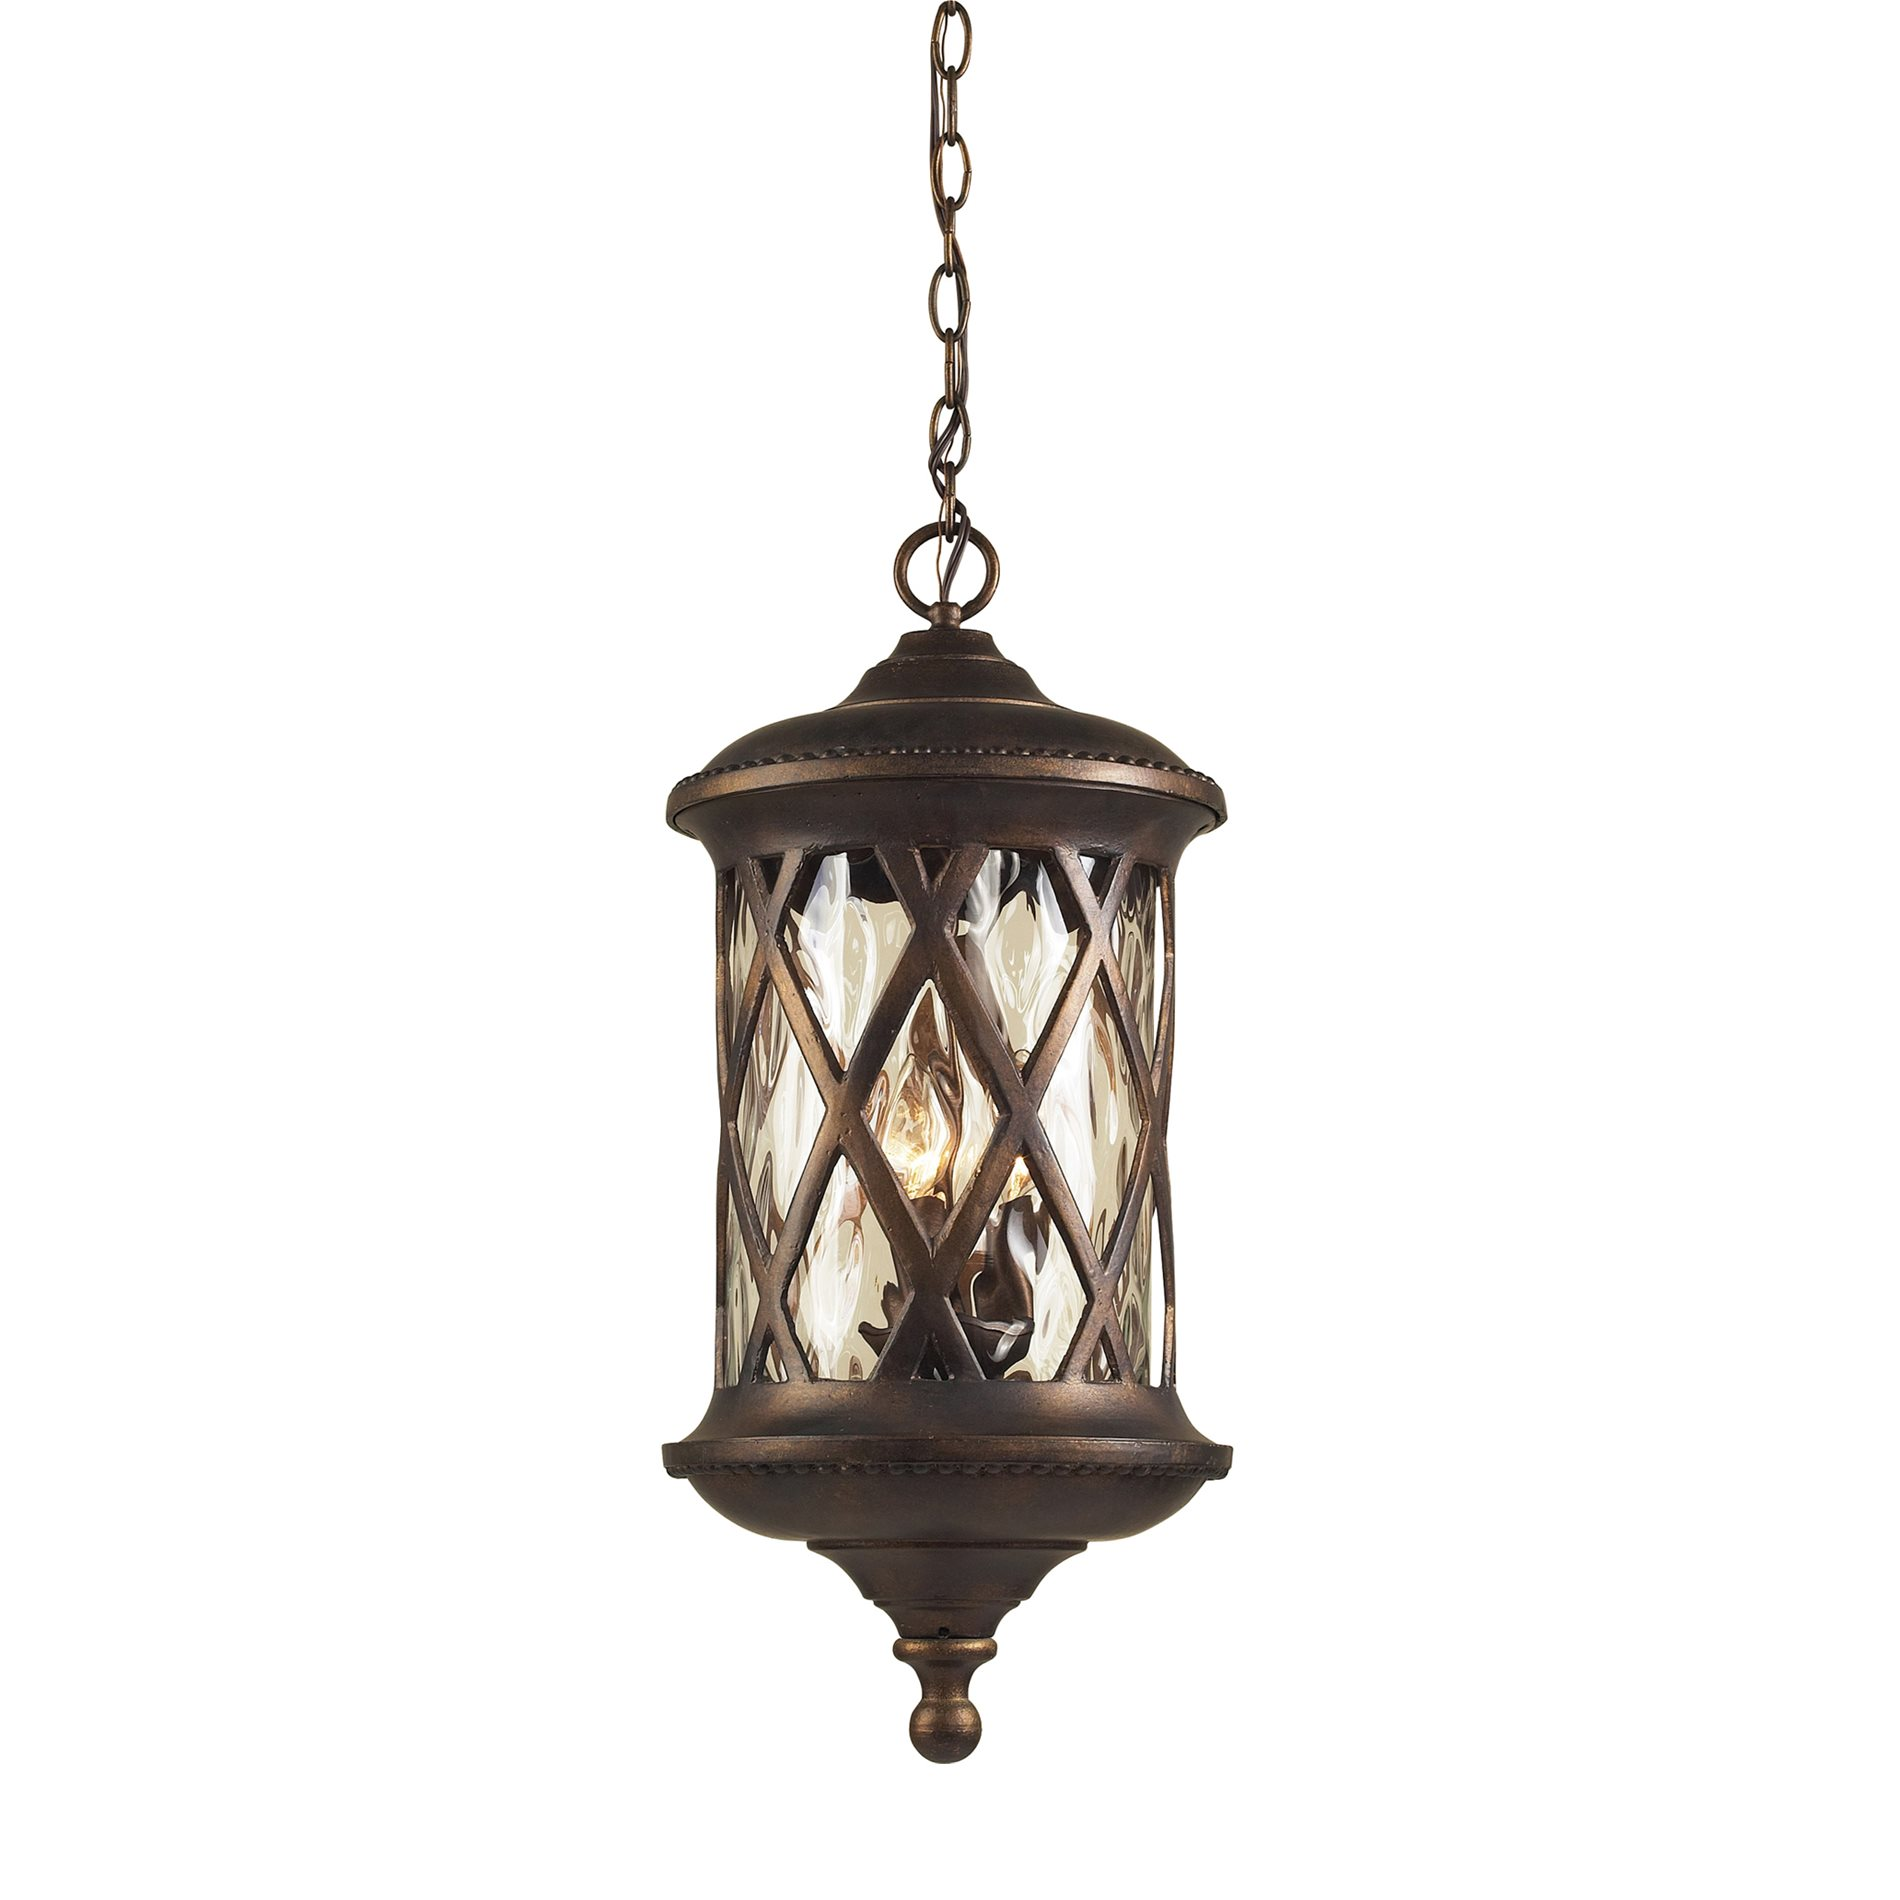 Elk Lighting Fans: Elk Lighting 42033/3 Barrington Gate Transitional Outdoor